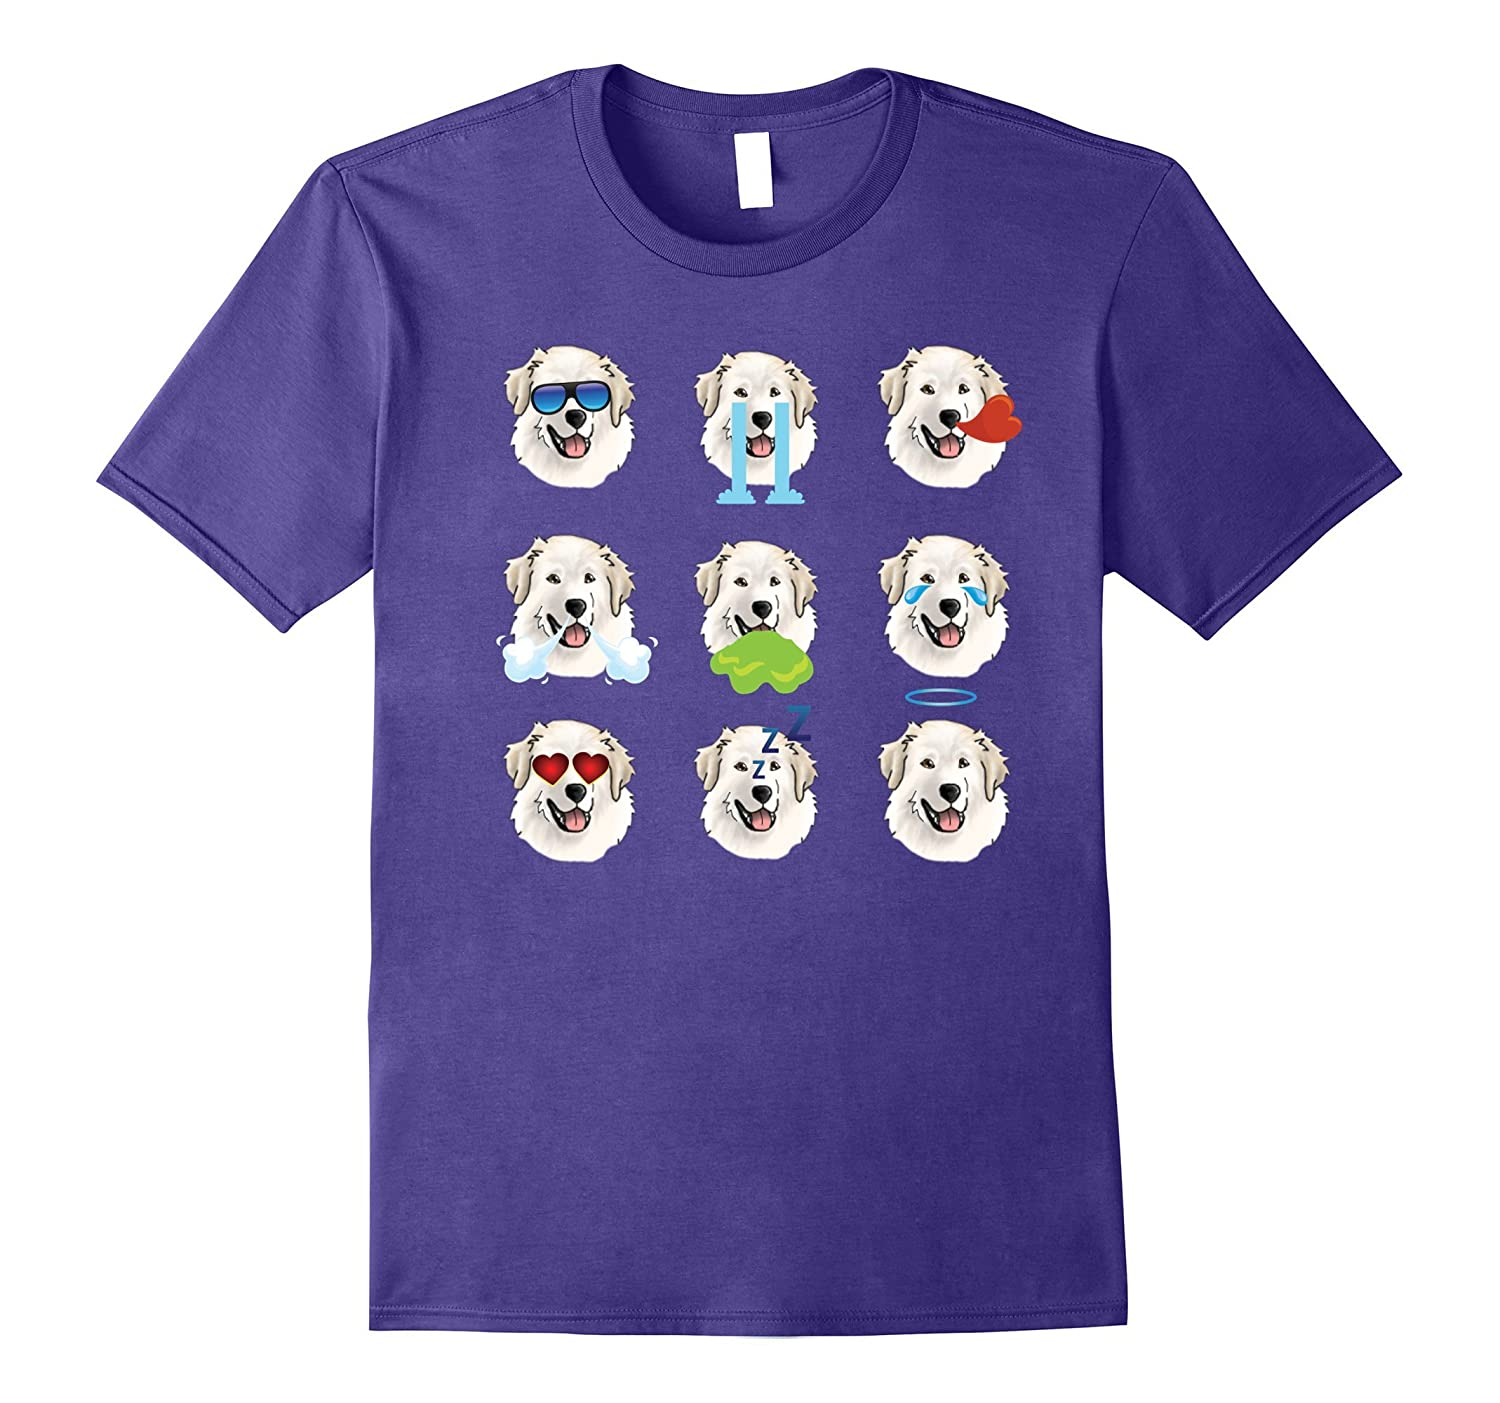 Nine Emoji Great Pyrenees Dog Emotion Face T-Shirt Gift-FL